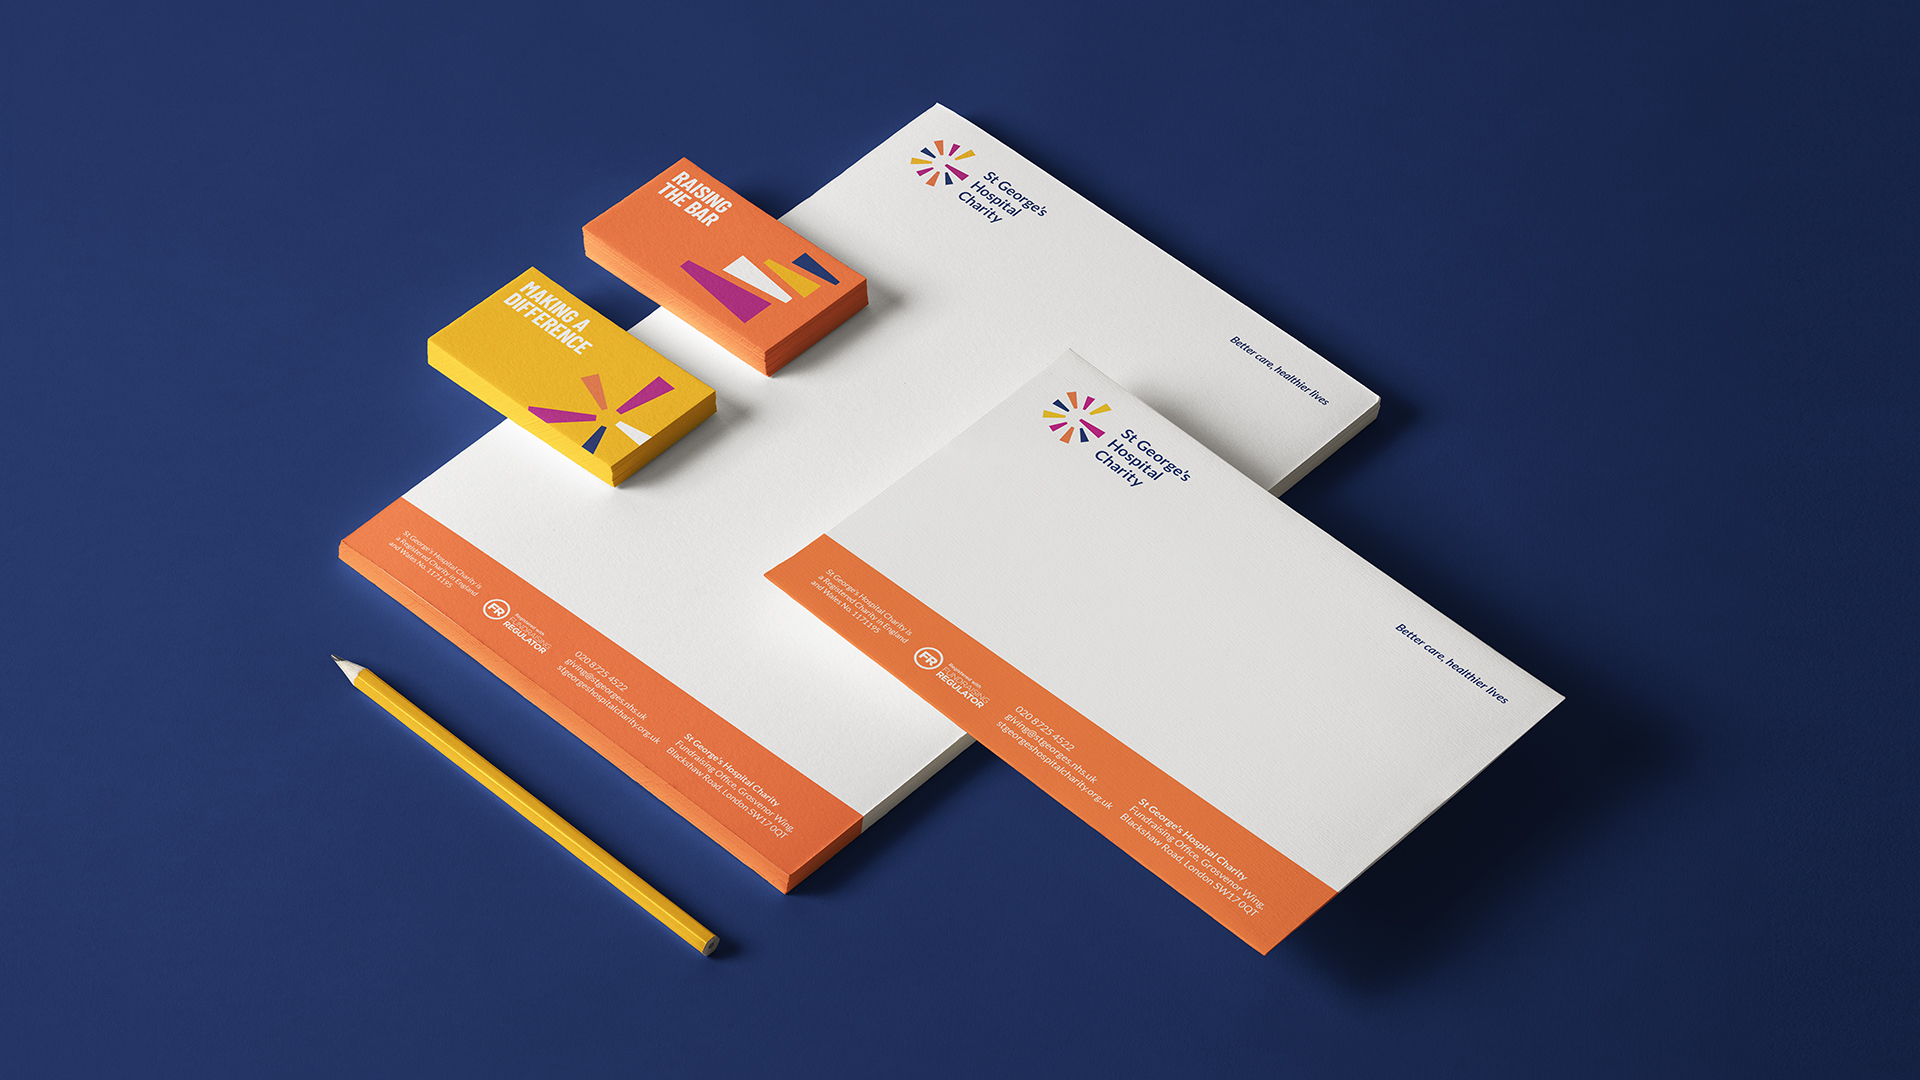 stghc_stationery_mockup_for-web